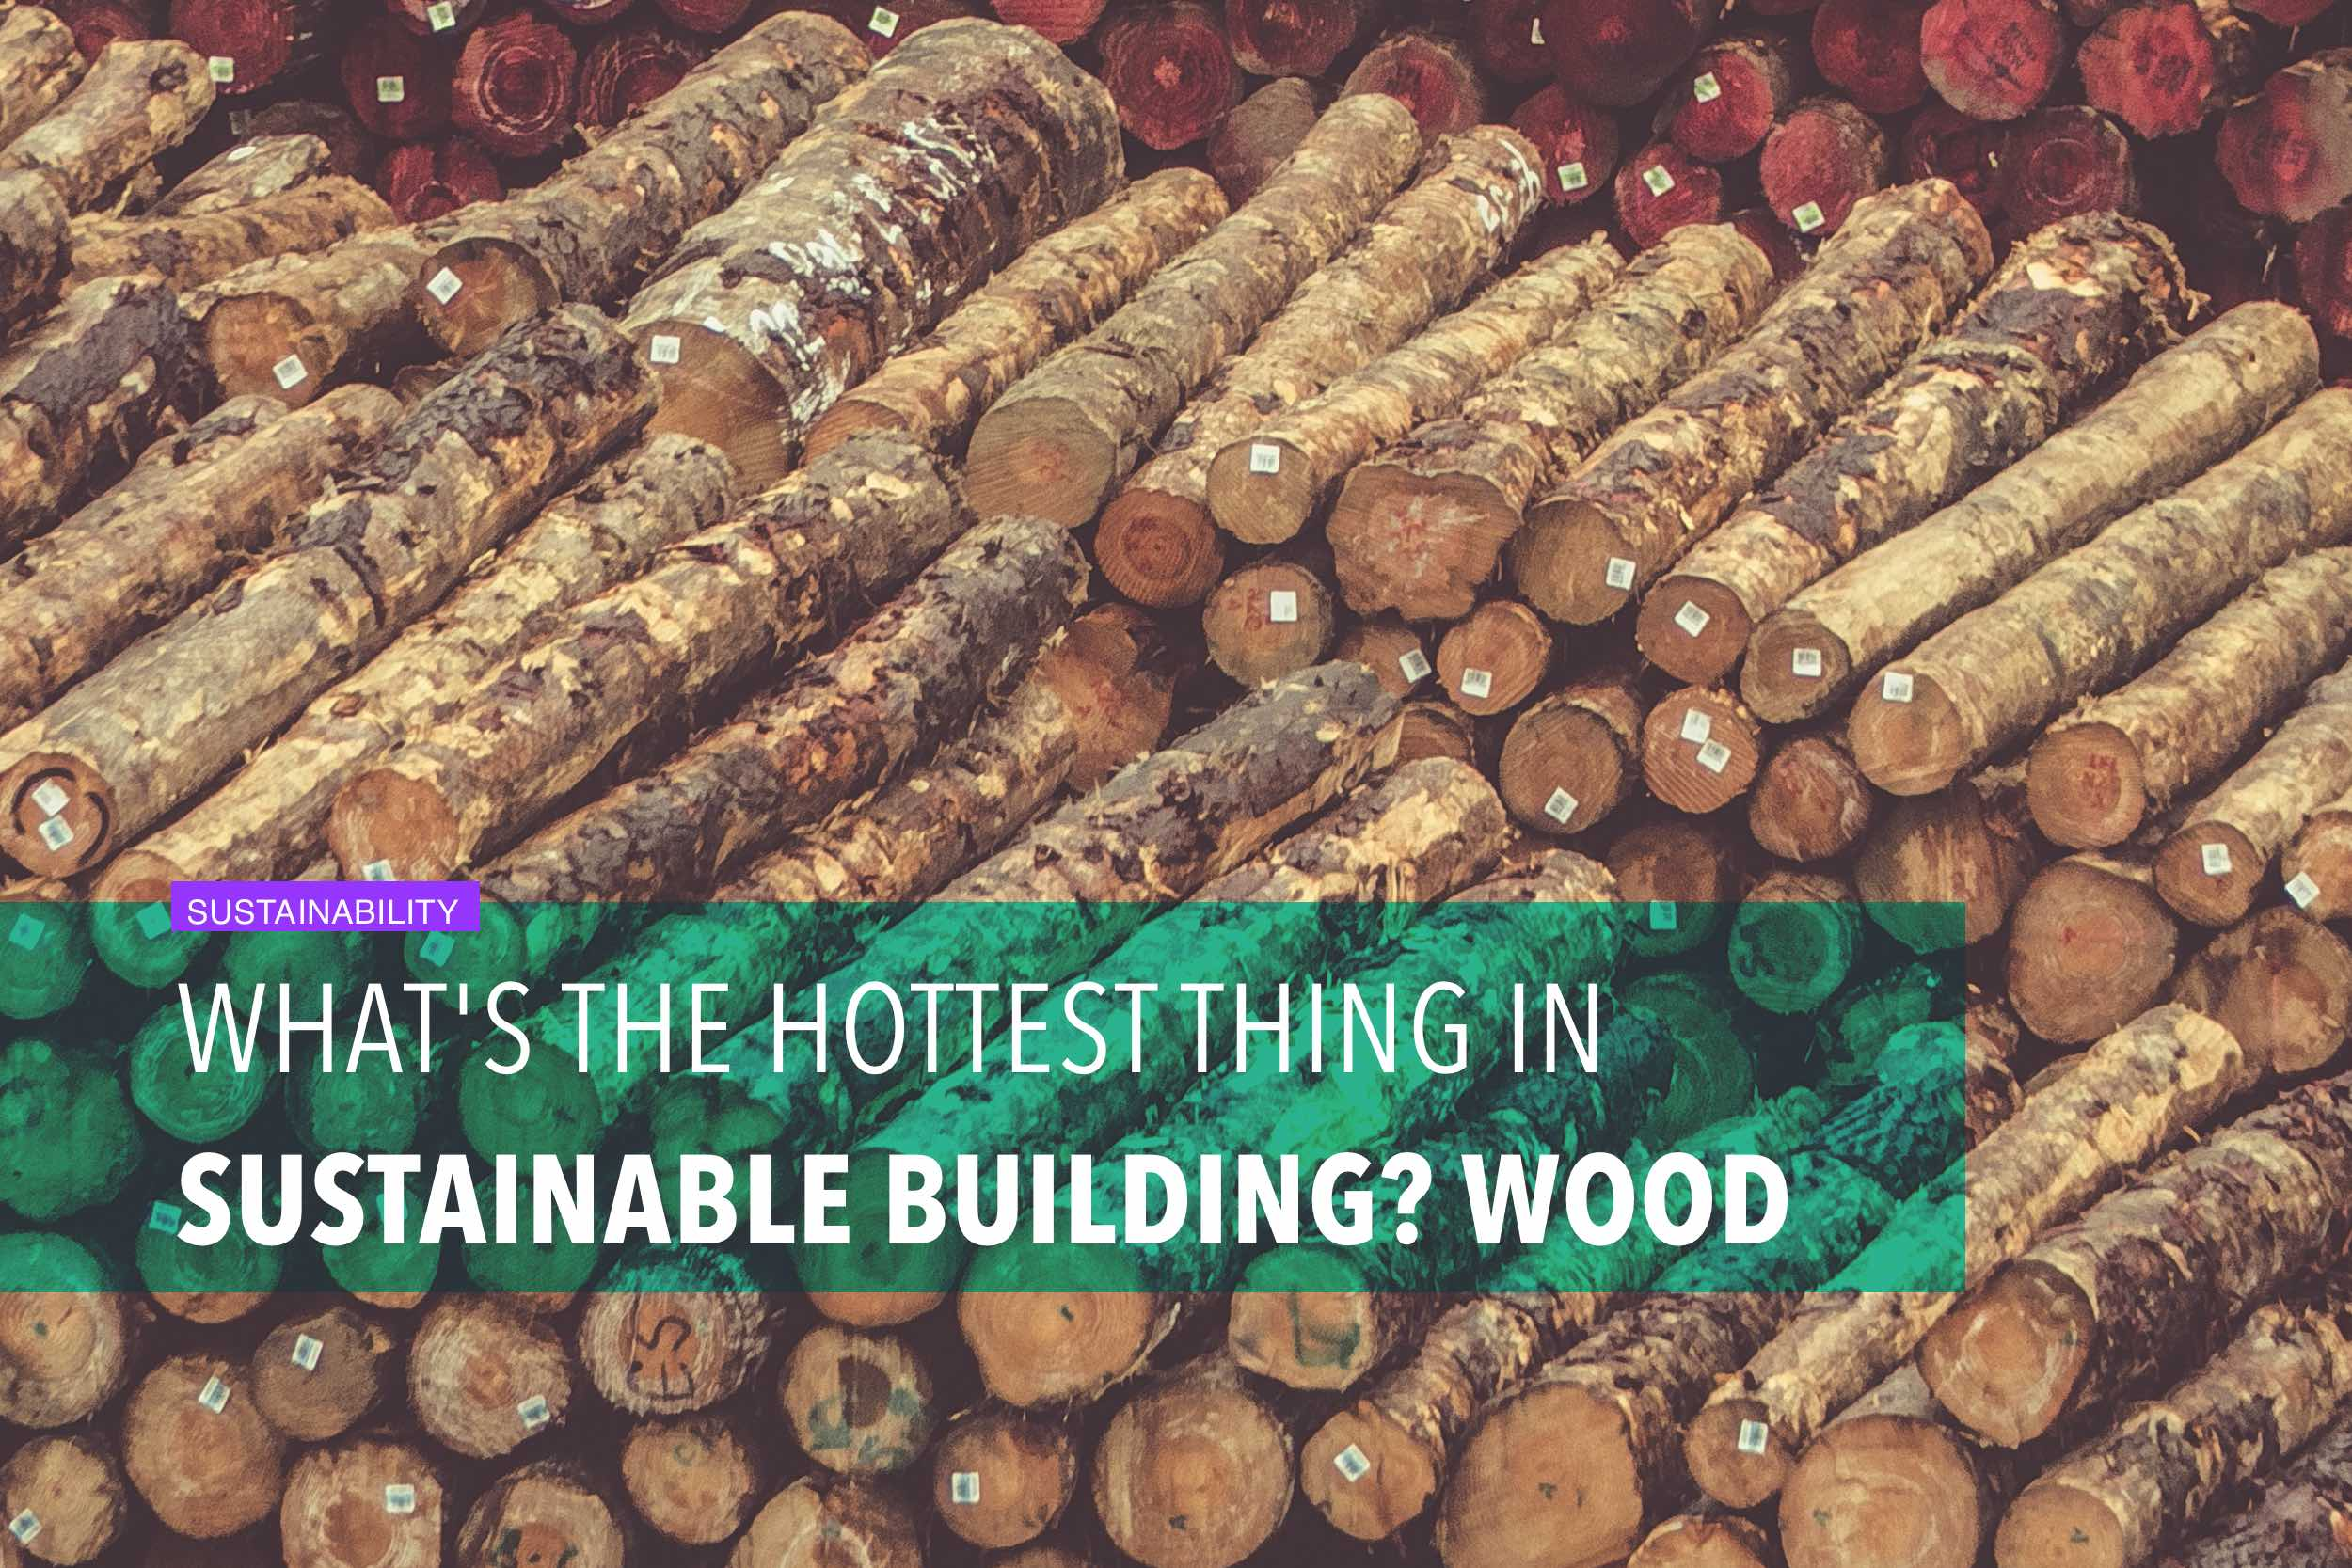 What's the hottest thing in sustainable building? Wood